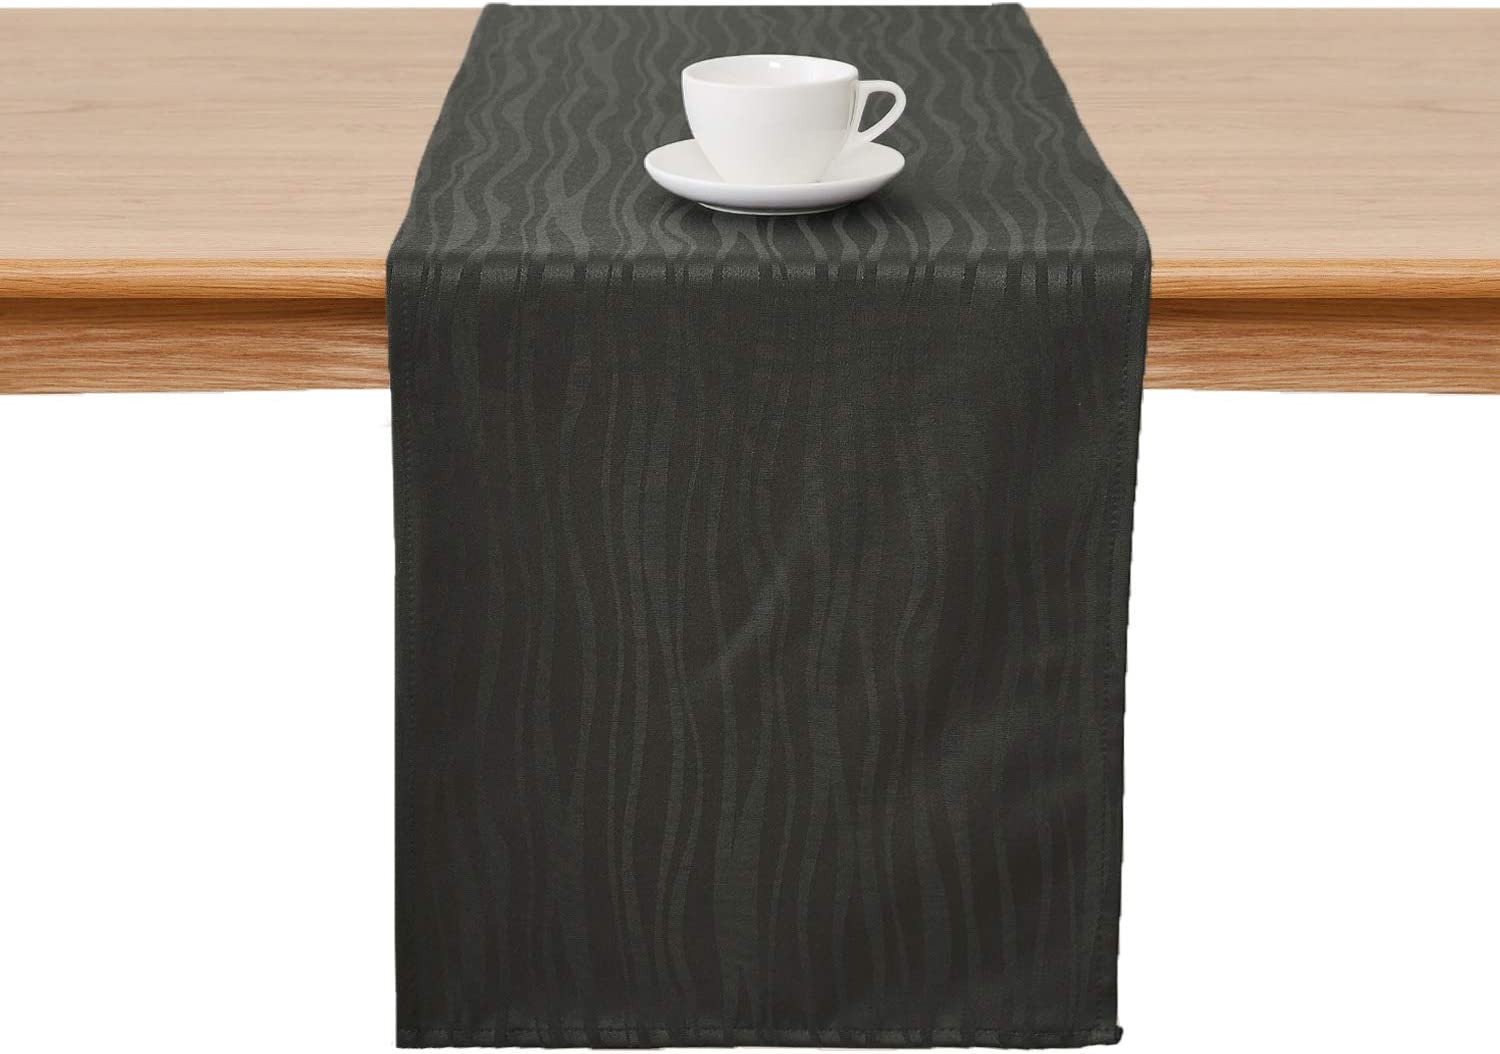 HJCC Table Runner Linen Waterproof Cloth Table Runner Waterproof Non-Slip Washable Decorated Indoor And Outdoor Dining Table